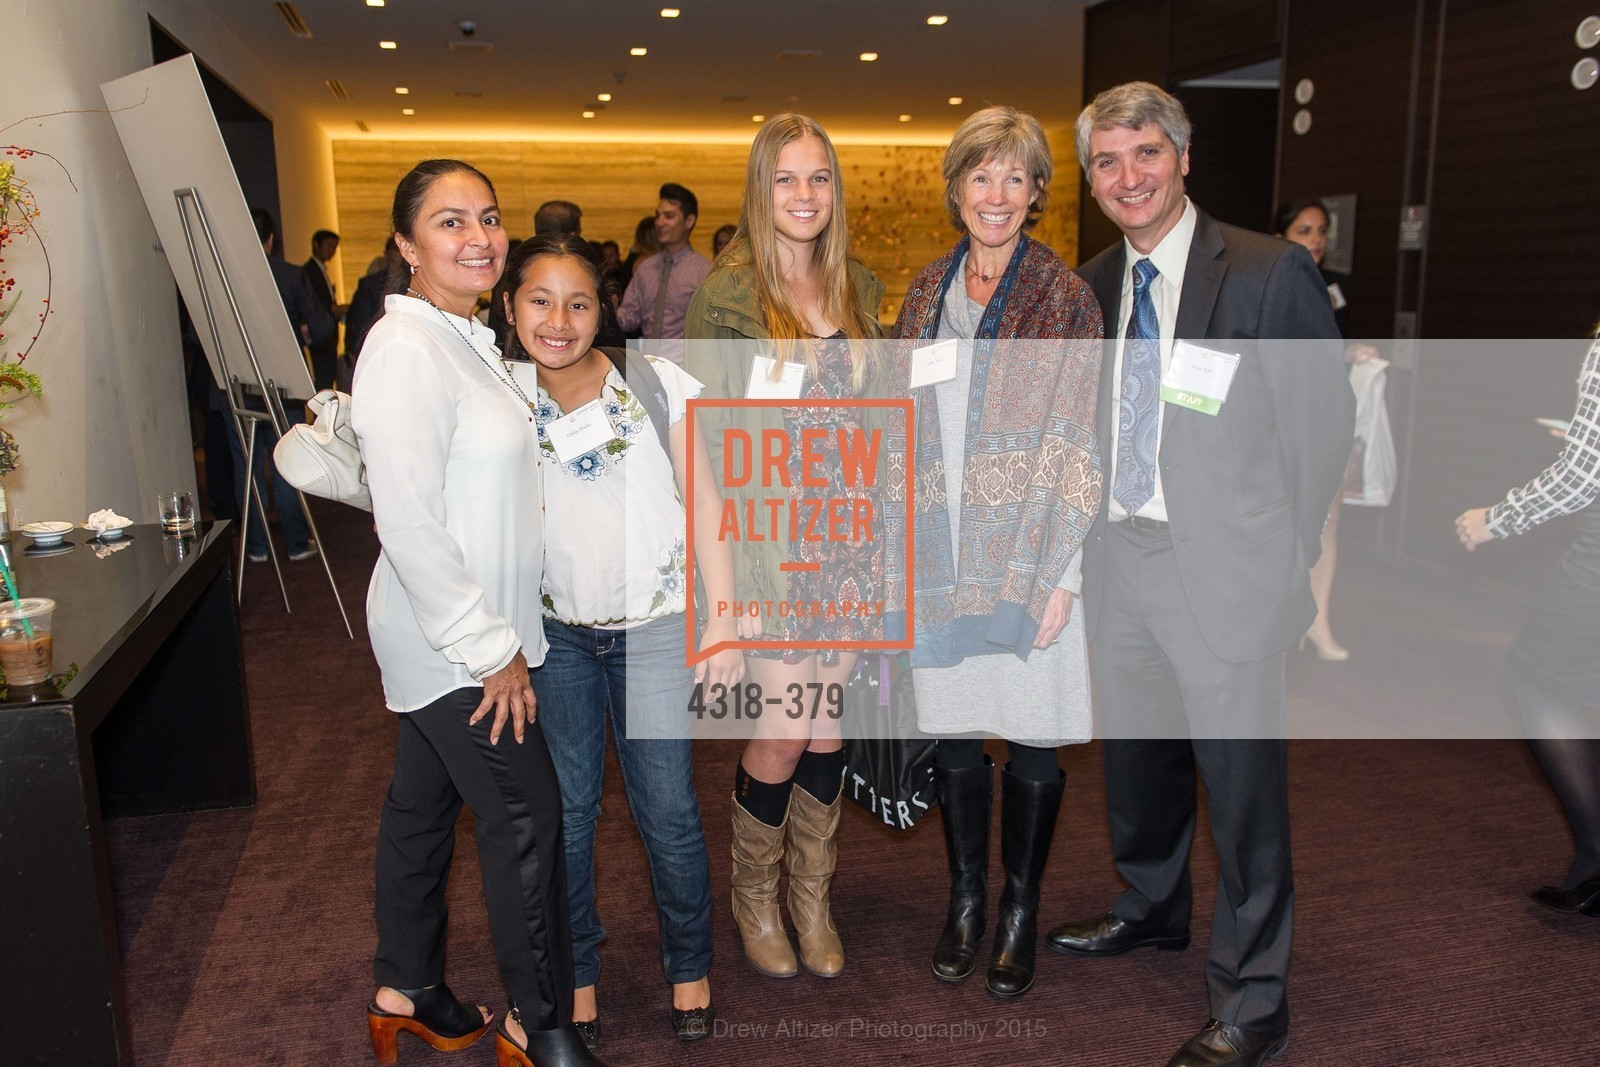 Nidia Pacho, Celine Pacho, Emily Veh, Anne Veh, Peter Katz, Genesys Works Bay Area Presents BREAKING THROUGH, St. Regis Hotel. 125 3rd St, October 14th, 2015,Drew Altizer, Drew Altizer Photography, full-service agency, private events, San Francisco photographer, photographer california